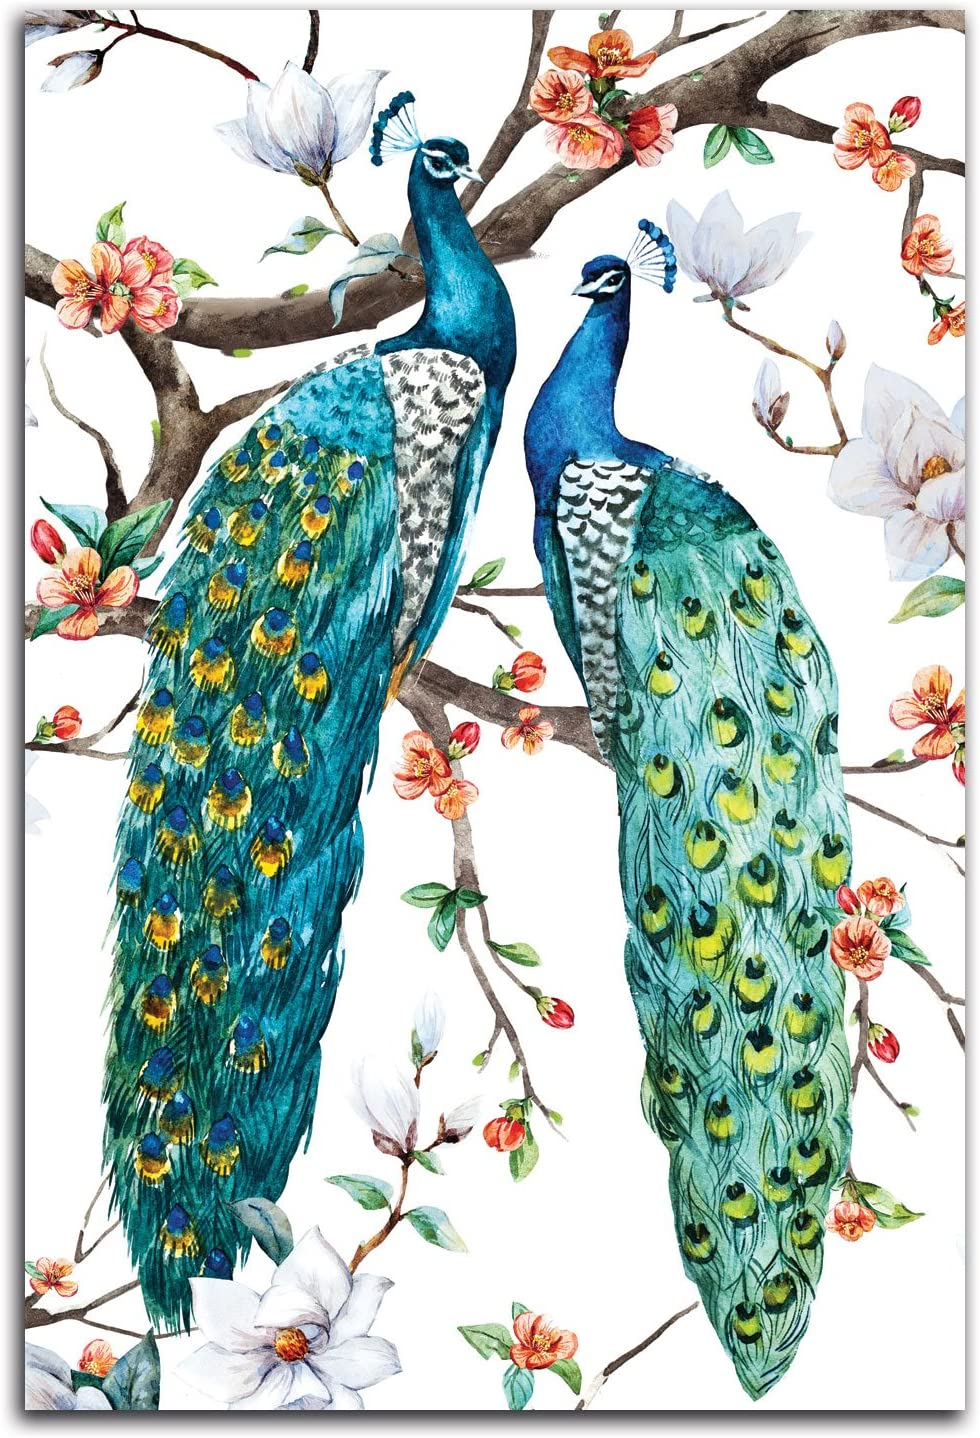 Gango Home Decor Vertical Paradis Birds I by Incado (Printed on Paper); One 12x18in Unframed Paper Poster